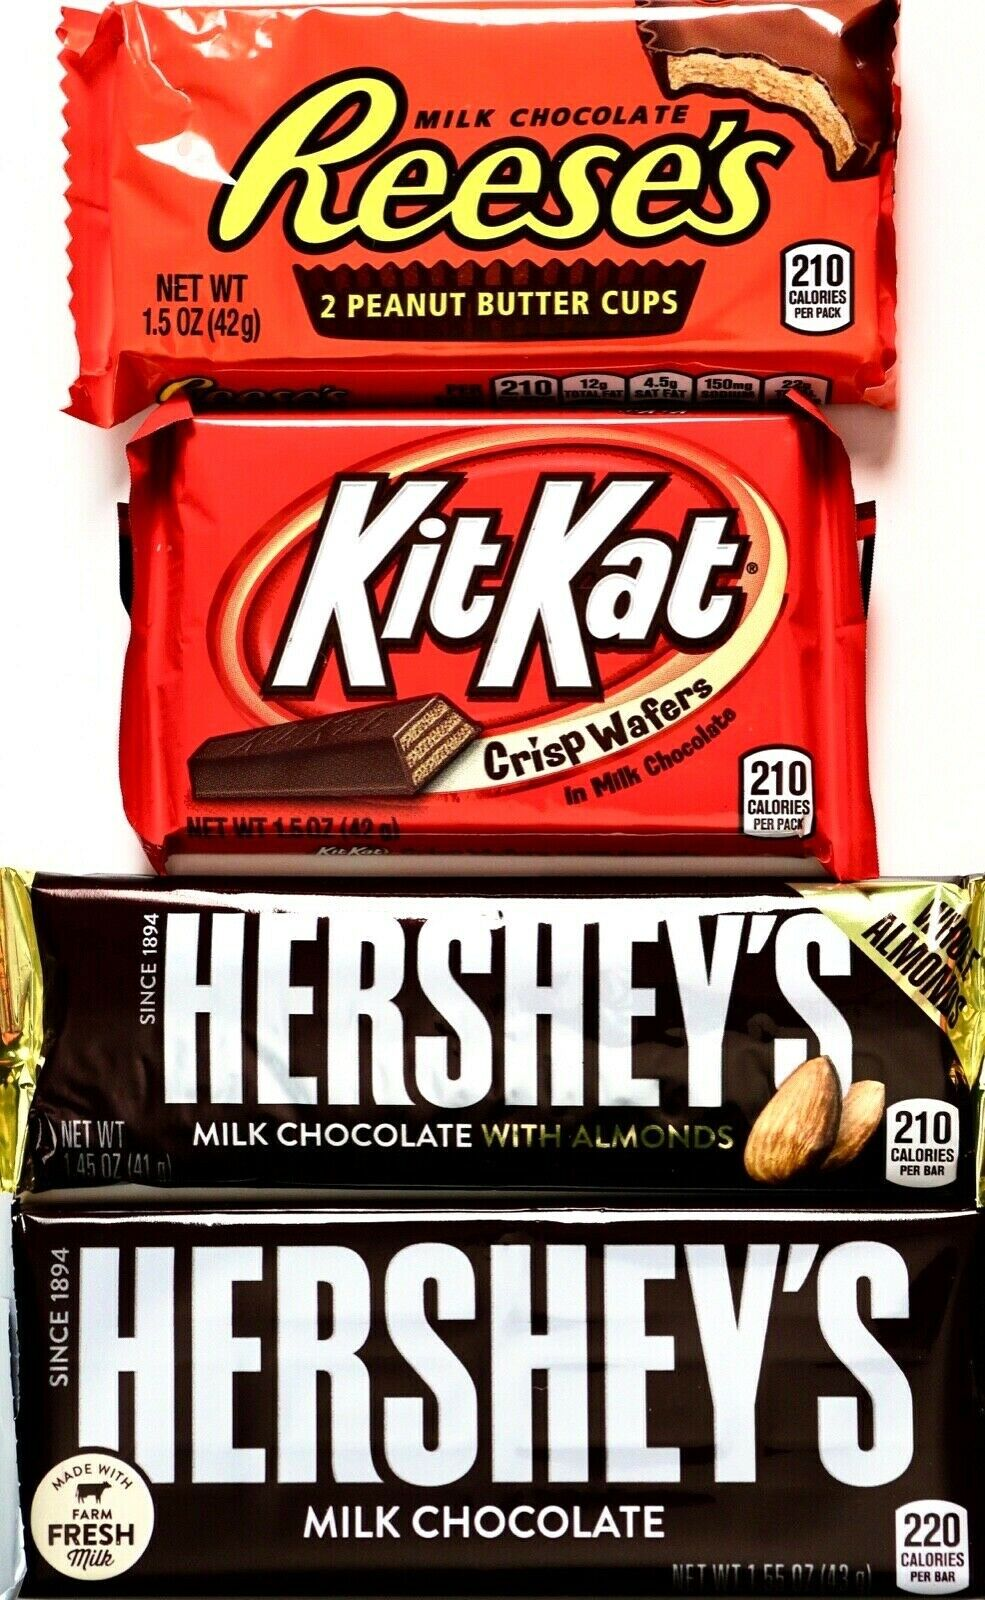 Fun Size Kit Kat Calories : calories, Reese'S, Halloween, Assorted, Snack, Candy,, Chocolate,, Online